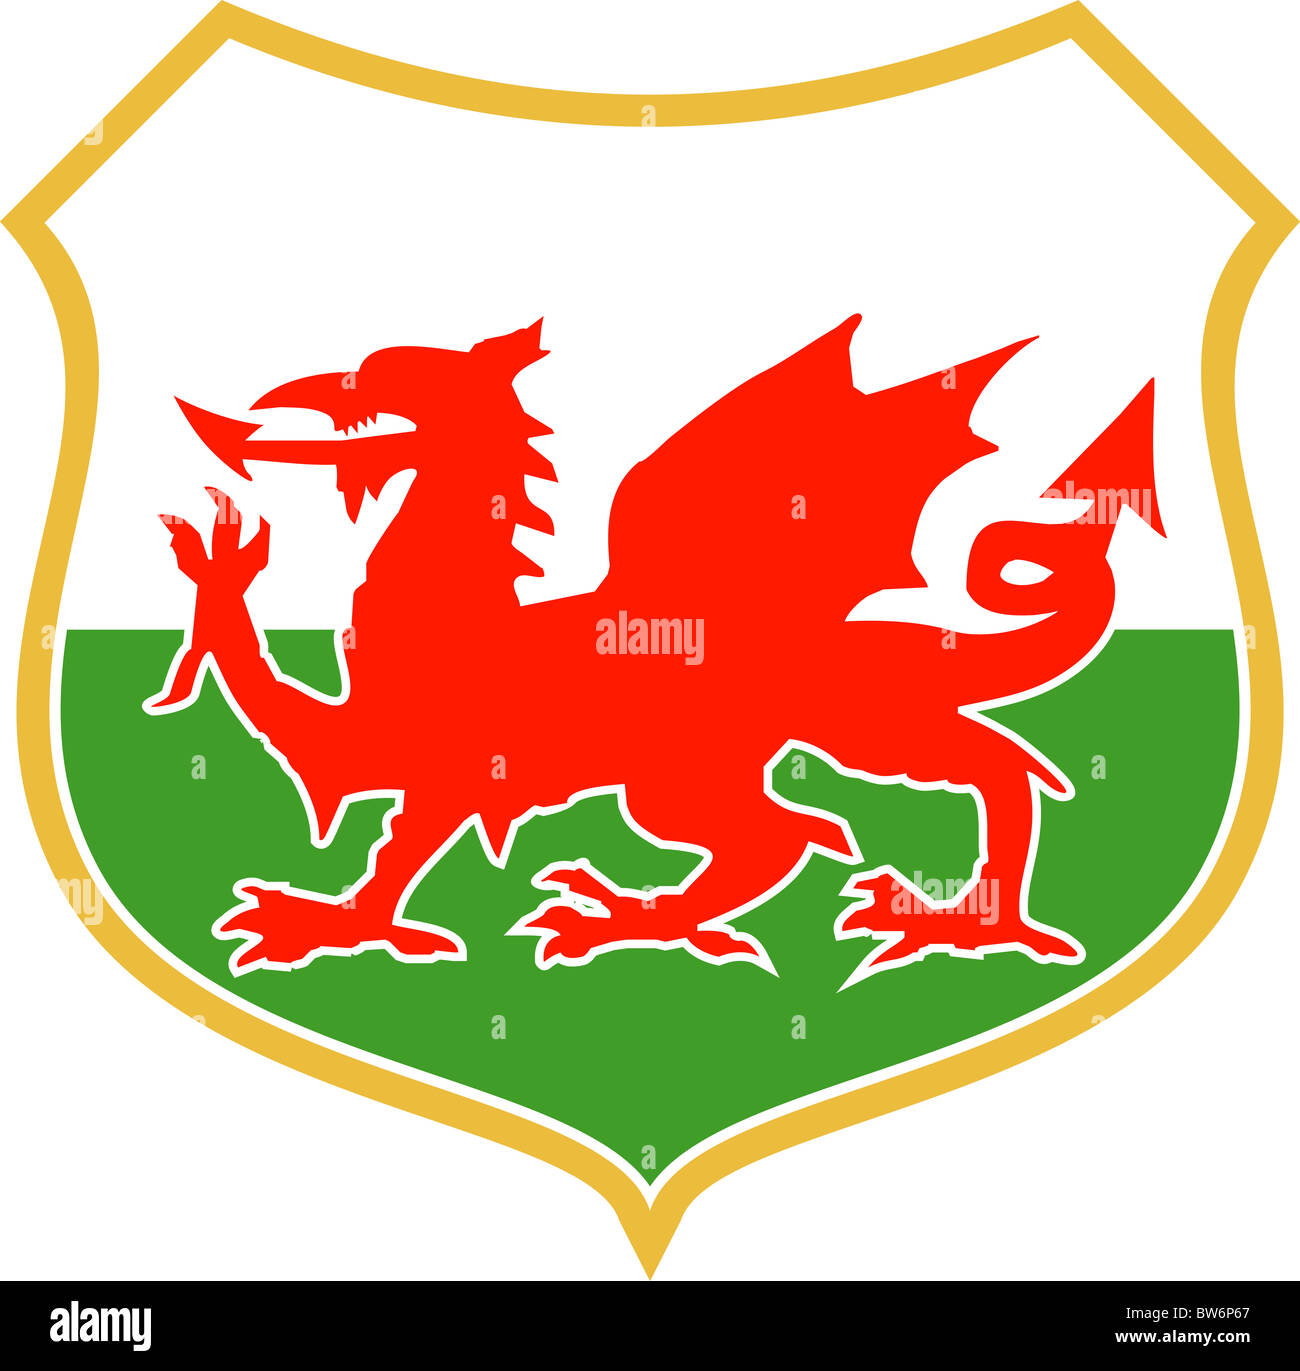 Illustration of a red welsh wales dragon with shield emblem coat illustration of a red welsh wales dragon with shield emblem coat of arms in background buycottarizona